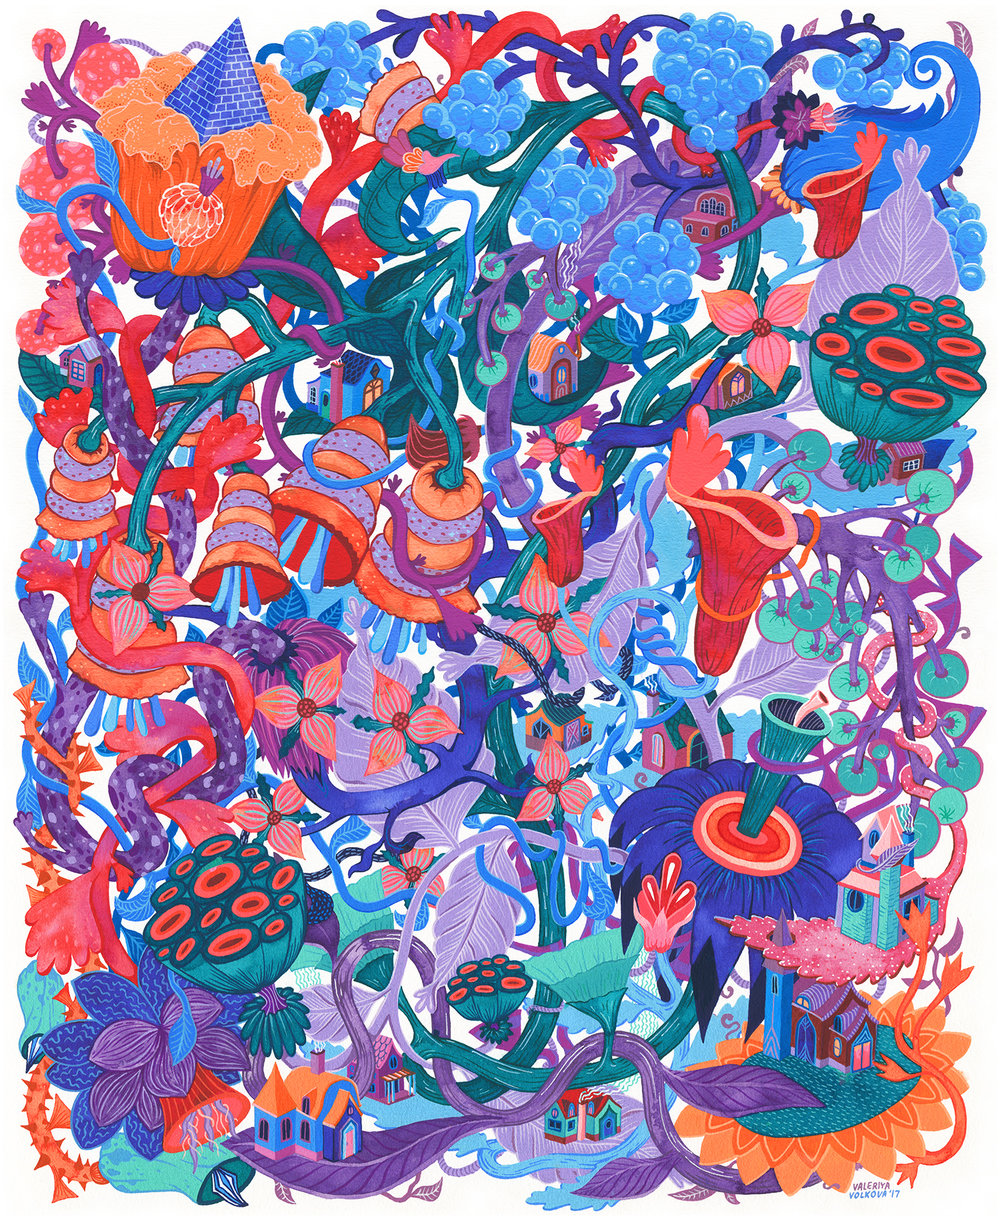 Big Flower Painting - web.jpg